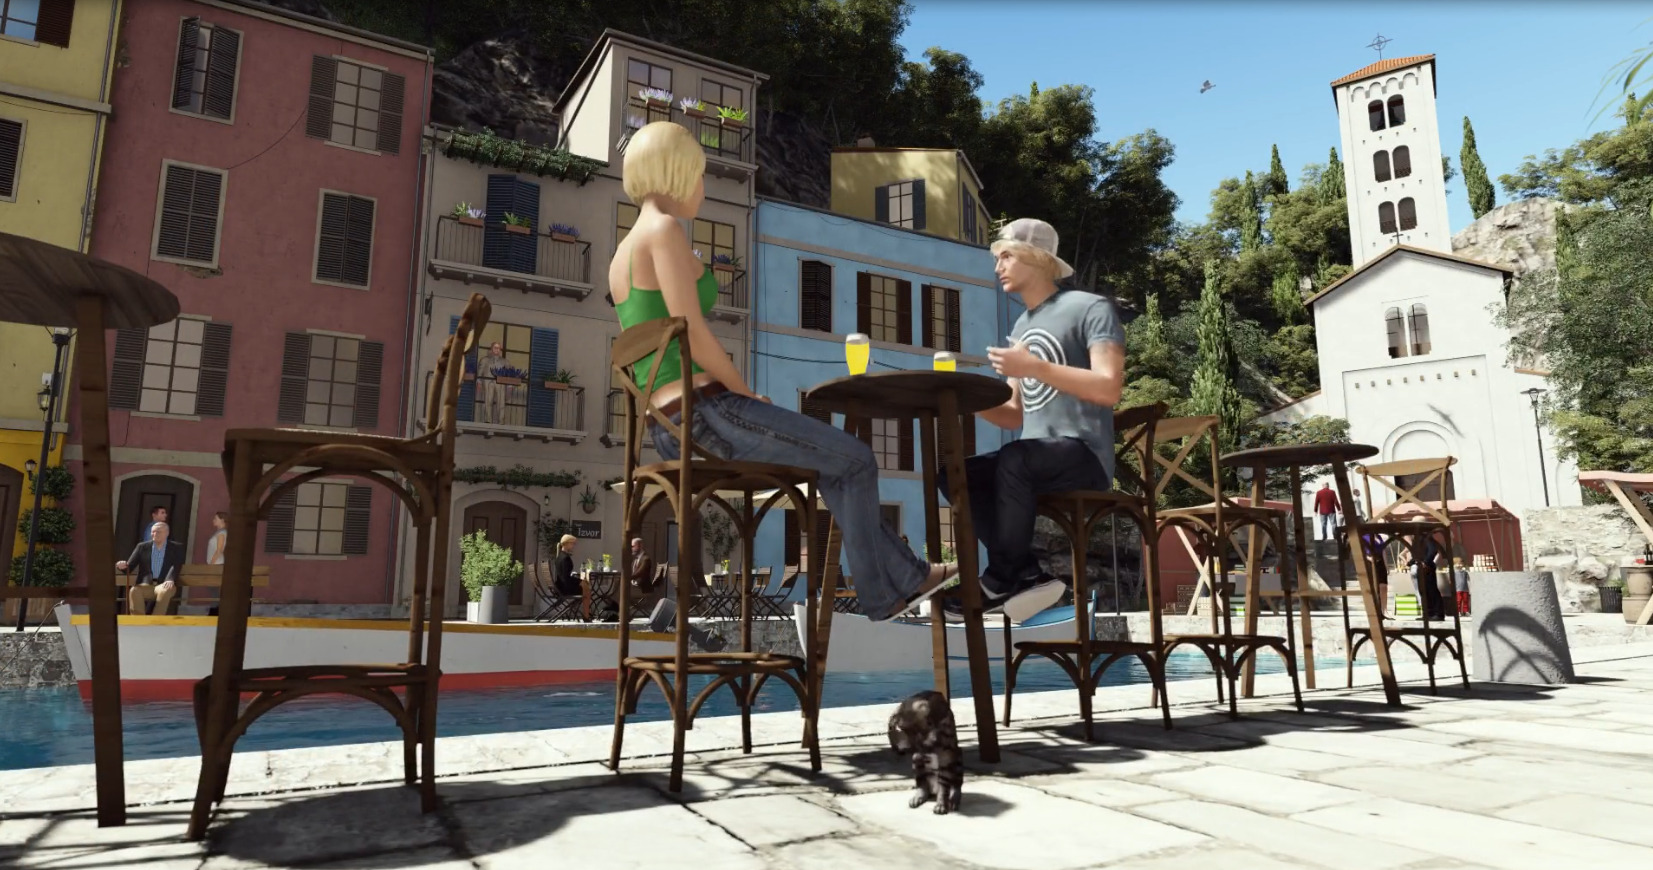 The Real Life is a new virtual life MMO simulator that looks quite